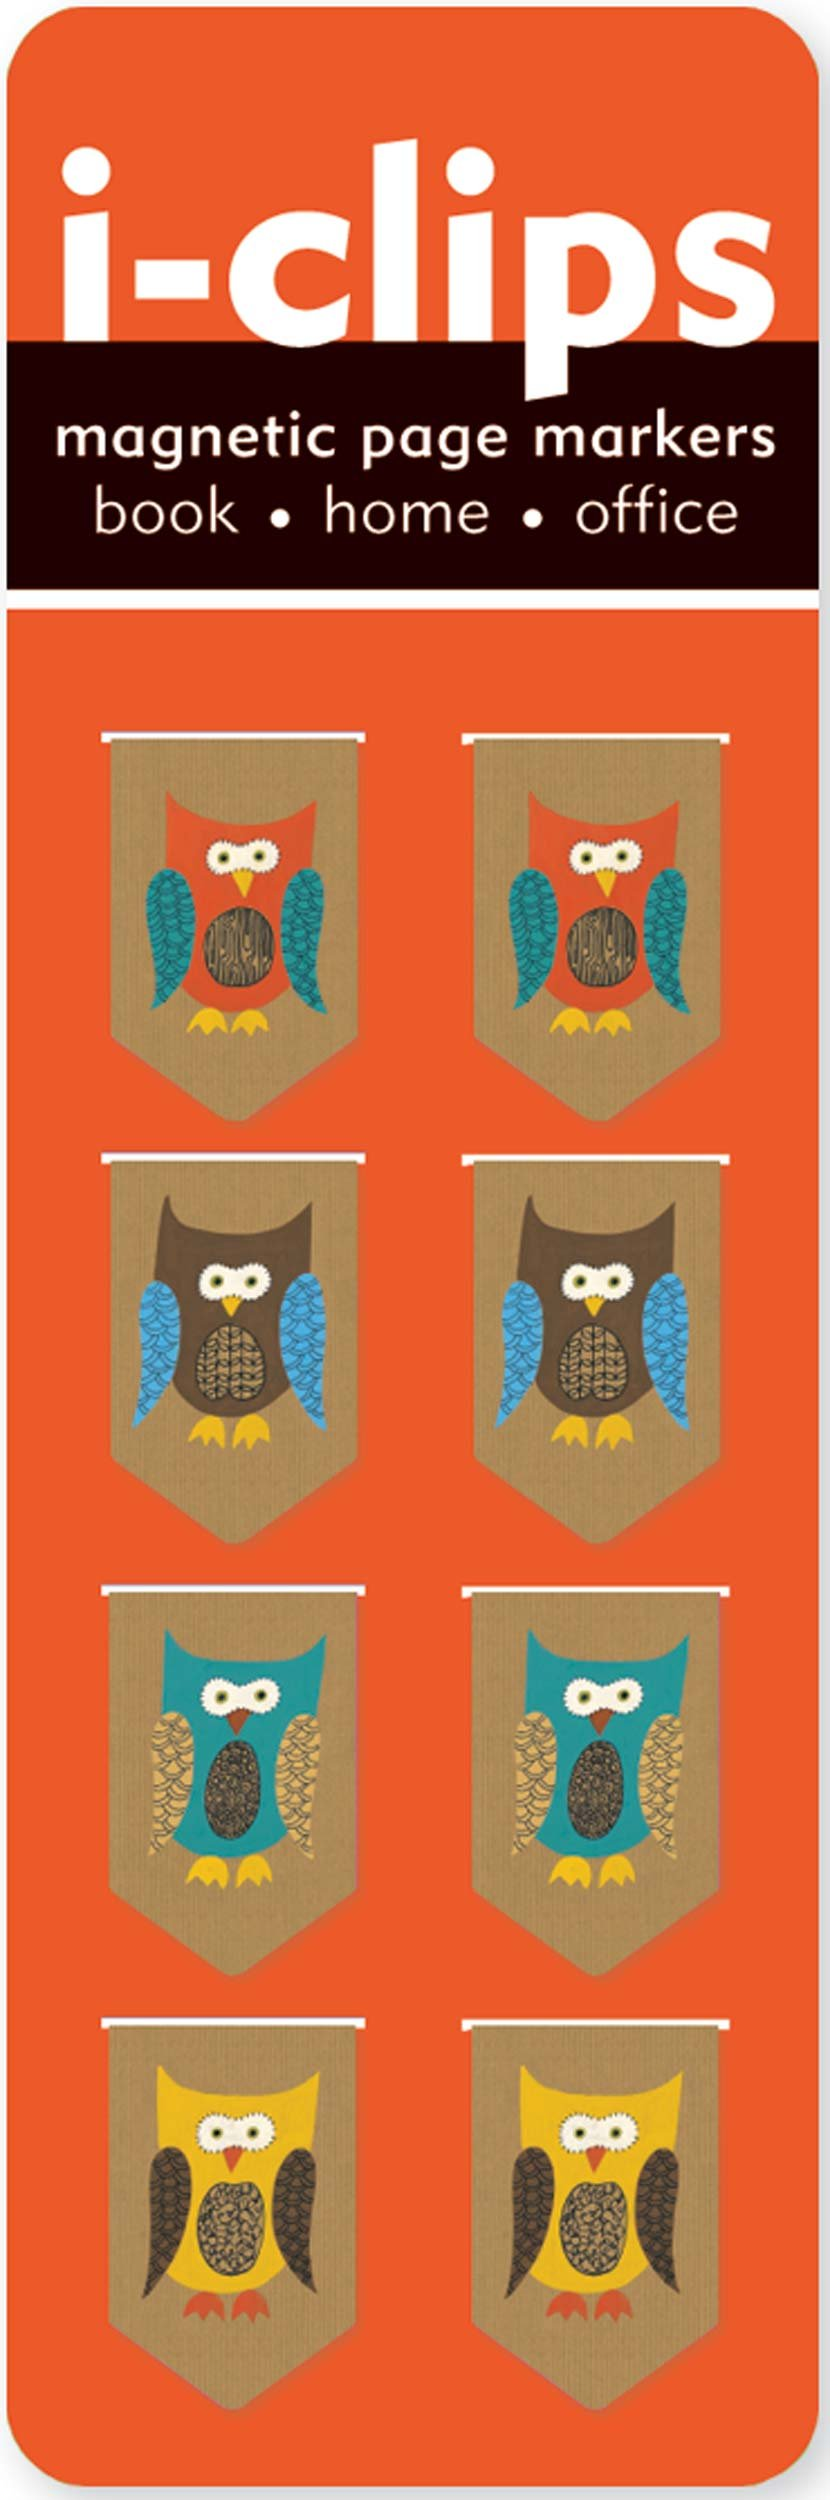 Owls i-Clip Magnetic Page Markers (Set of 8 Magnetic Bookmarks) PDF ePub book